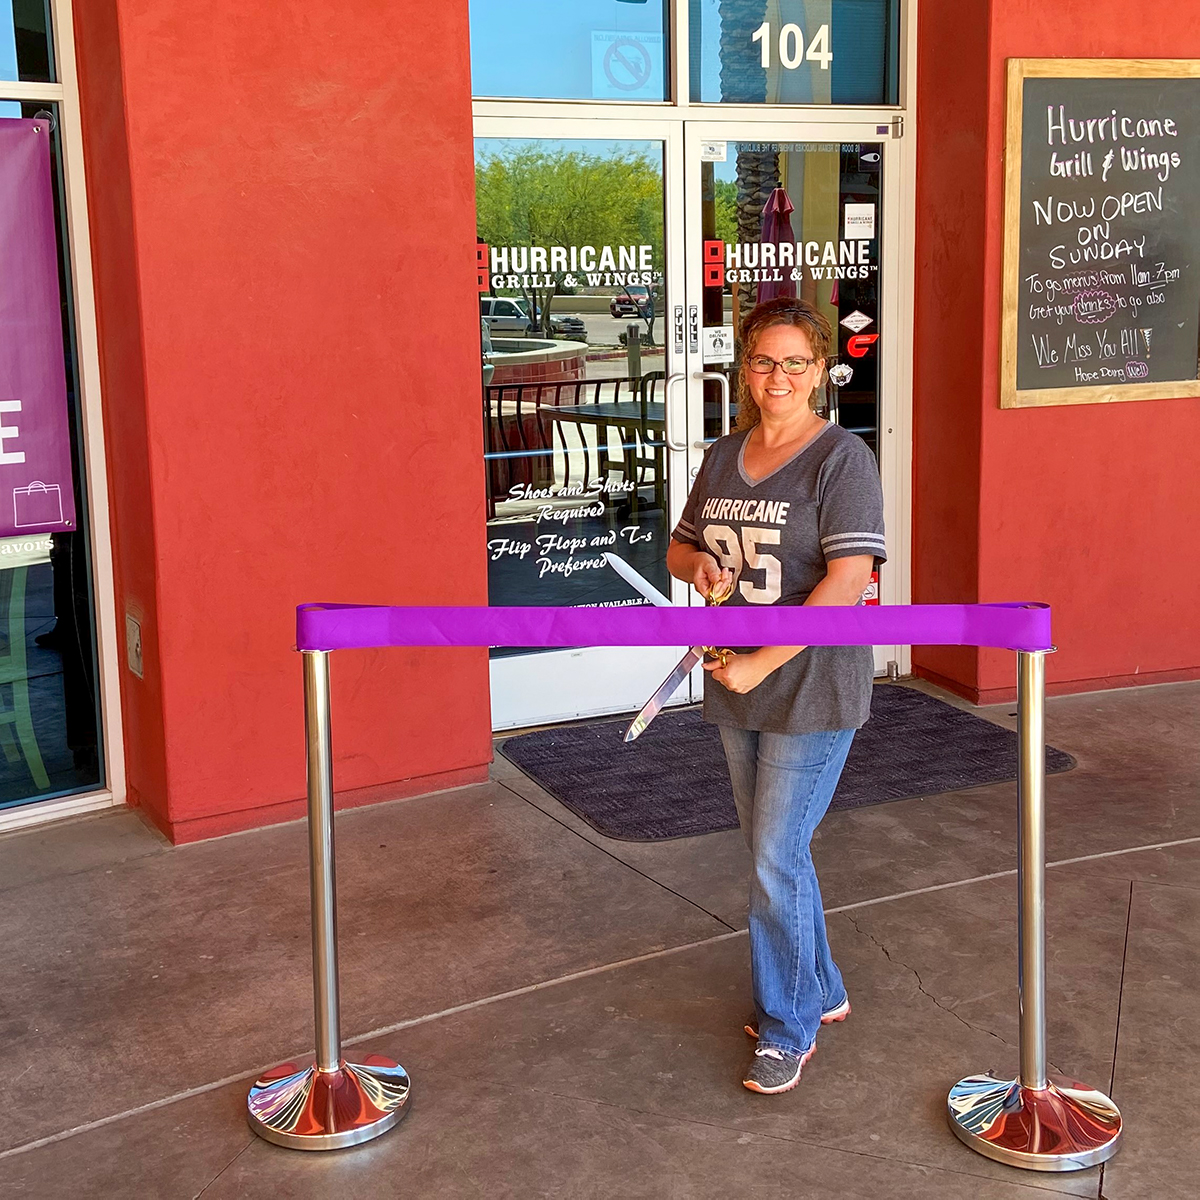 A purple ribbon is cut outside of Hurricane Grill & Wings for the business' re-opening.